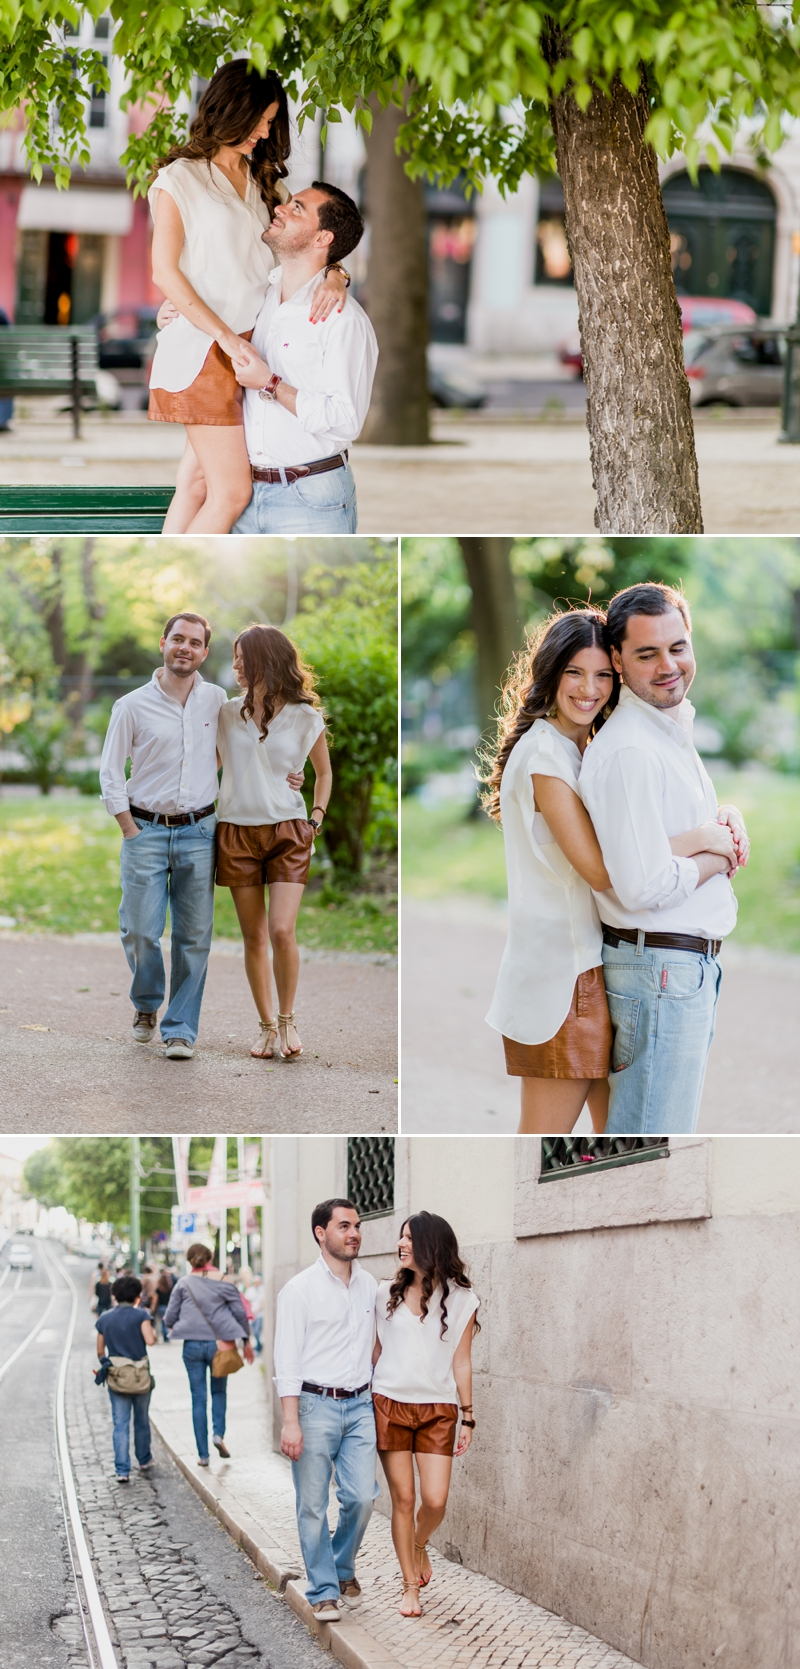 MR_Engagement_portugal_wedding_photographer-5.jpg